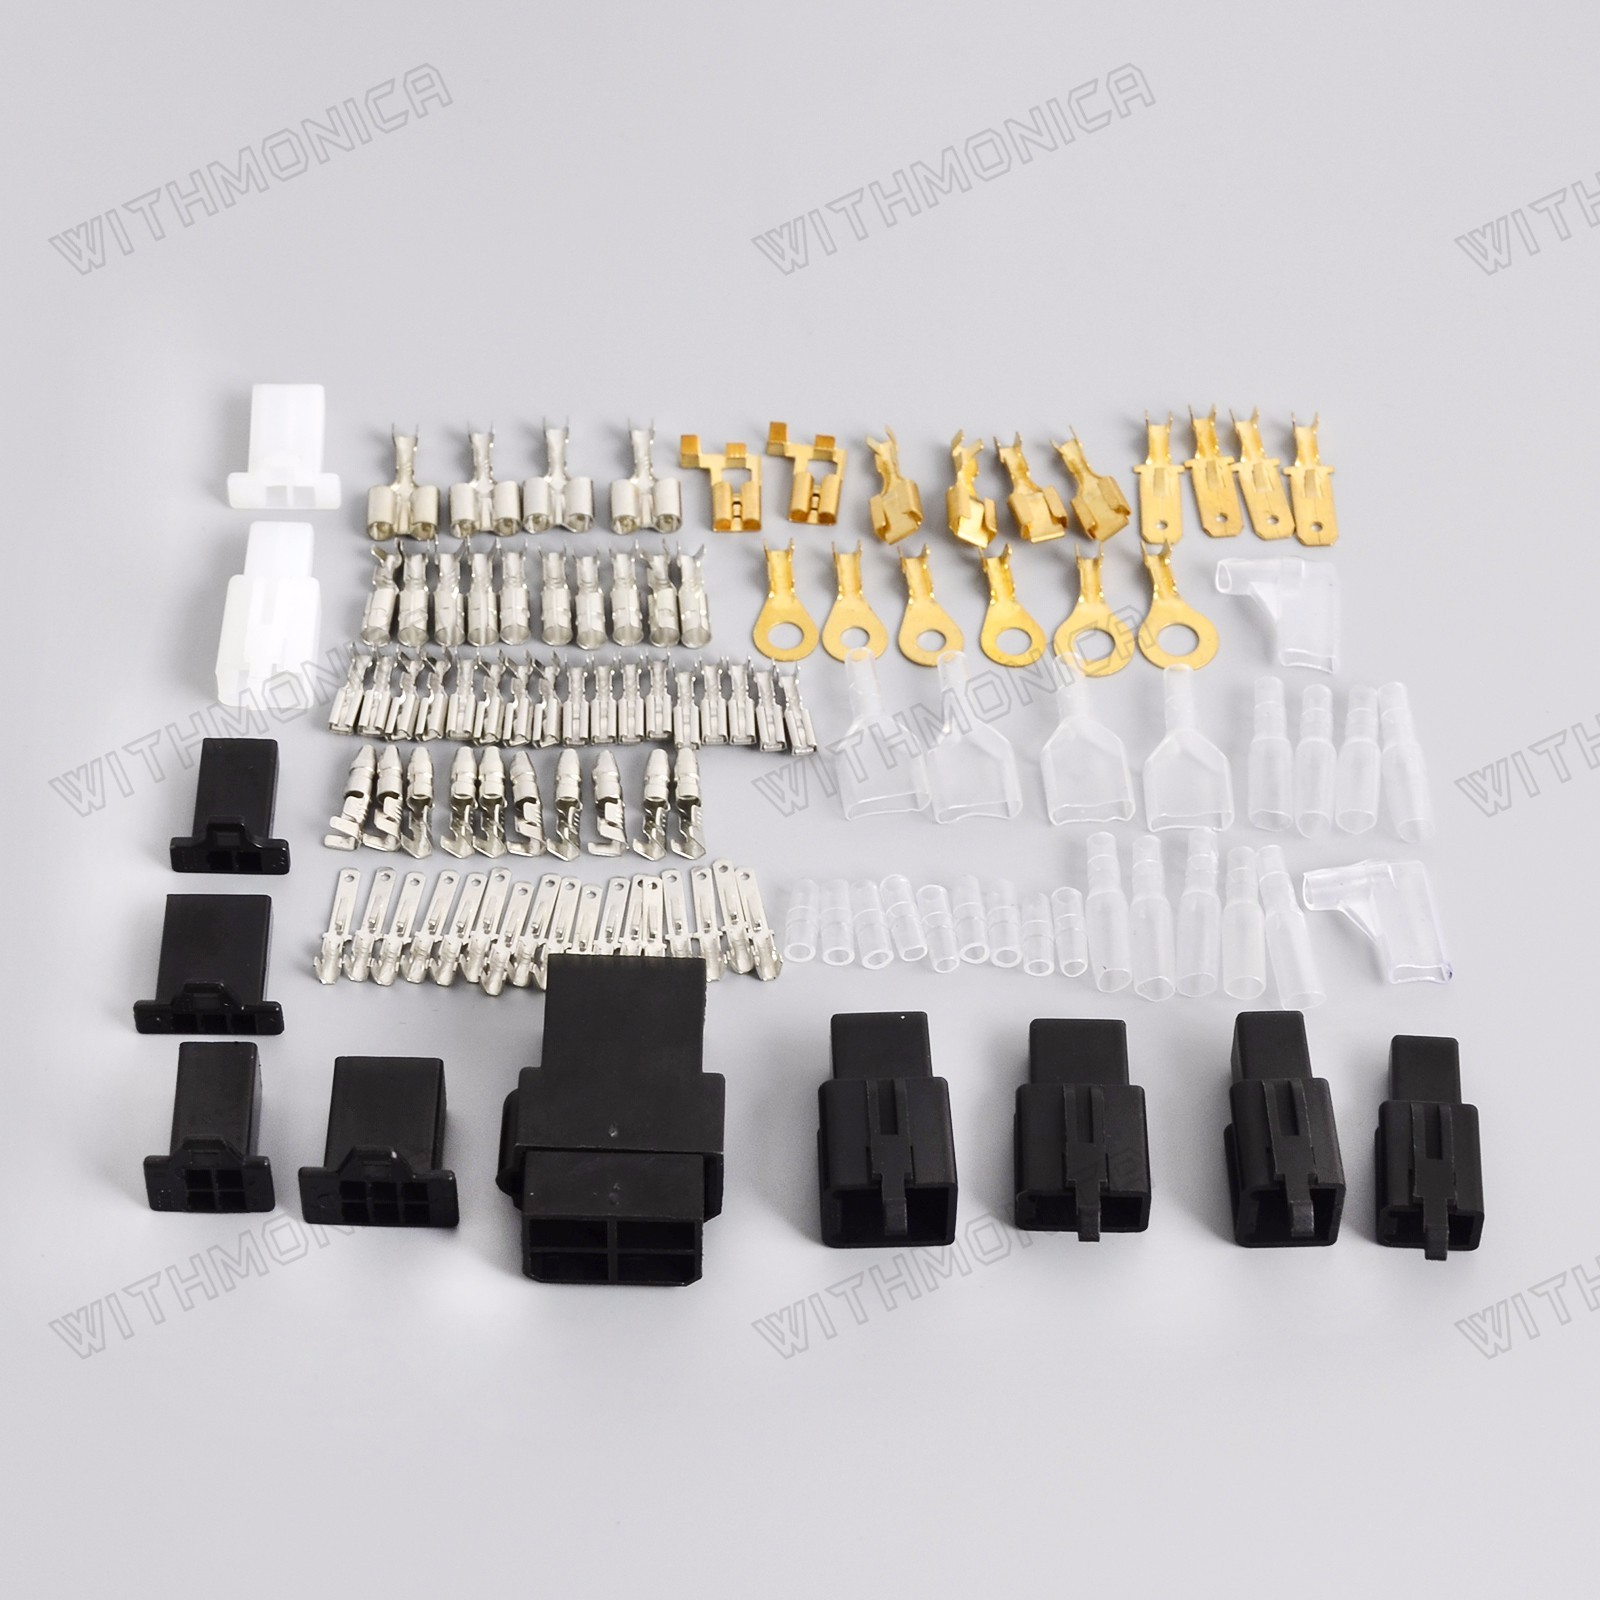 Universal Motorcycle Electrical Wiring Harness Repair Connector Kit Home In 1954 Plugs Bullet